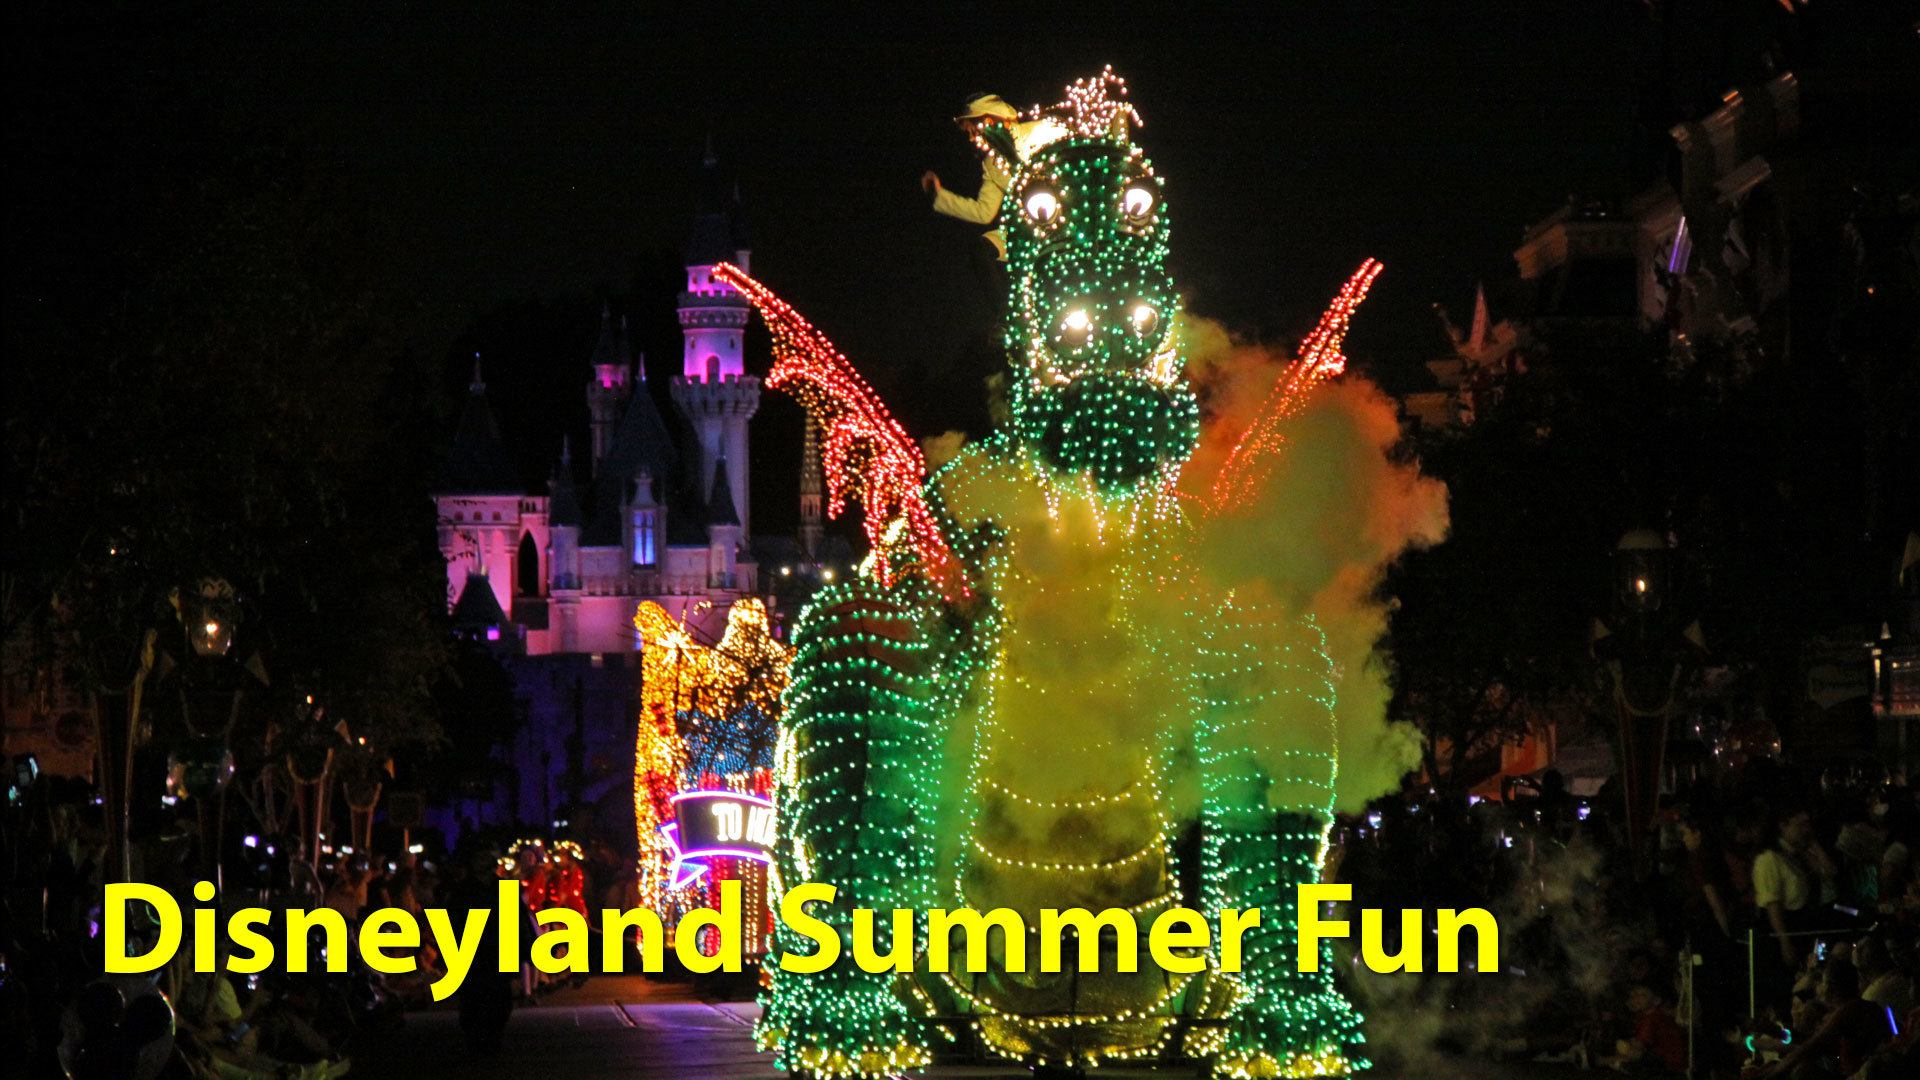 Disneyland Summer Fun - Geeks Corner - Episode 638